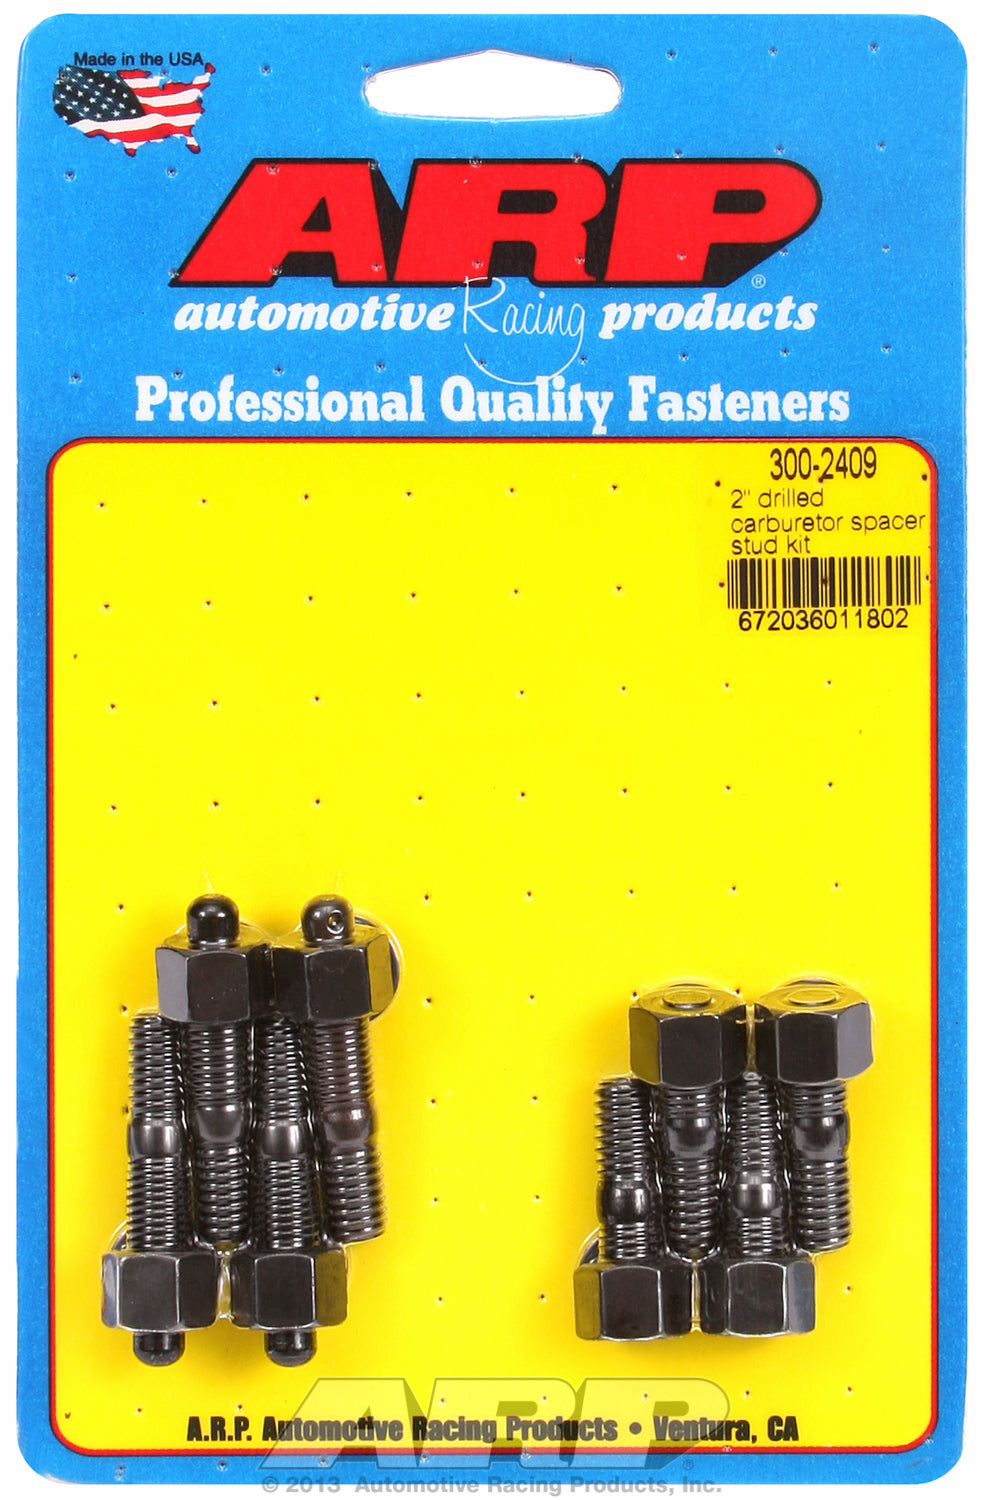 2˝ Moroso spacer (drilled for NASCAR wire seal) Carb Stud Kit 1.250* (4) & 1.700 (1) & 1.700 (1)in OA